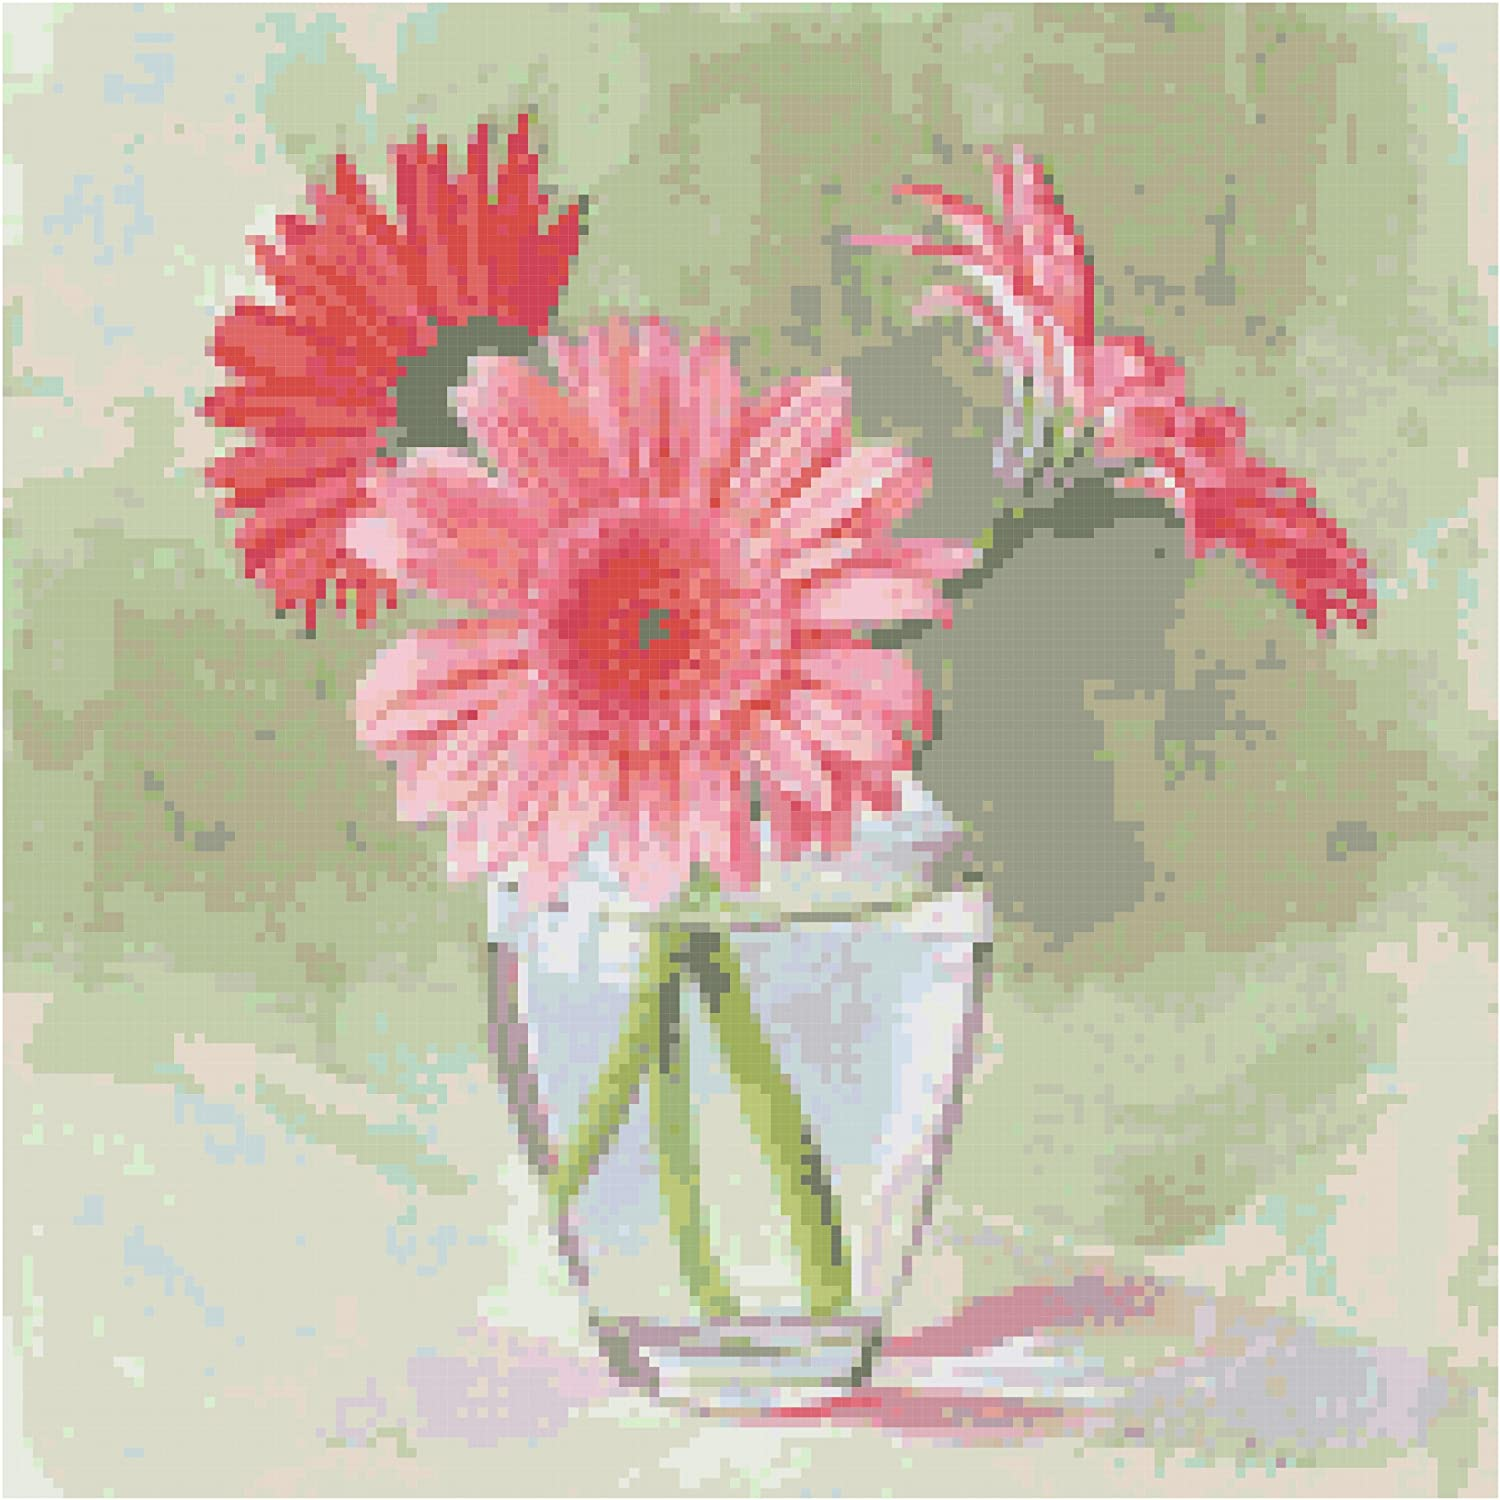 Amazon.com: Coral Gerbera Daisies Flowers Counted Cross Stitch ...